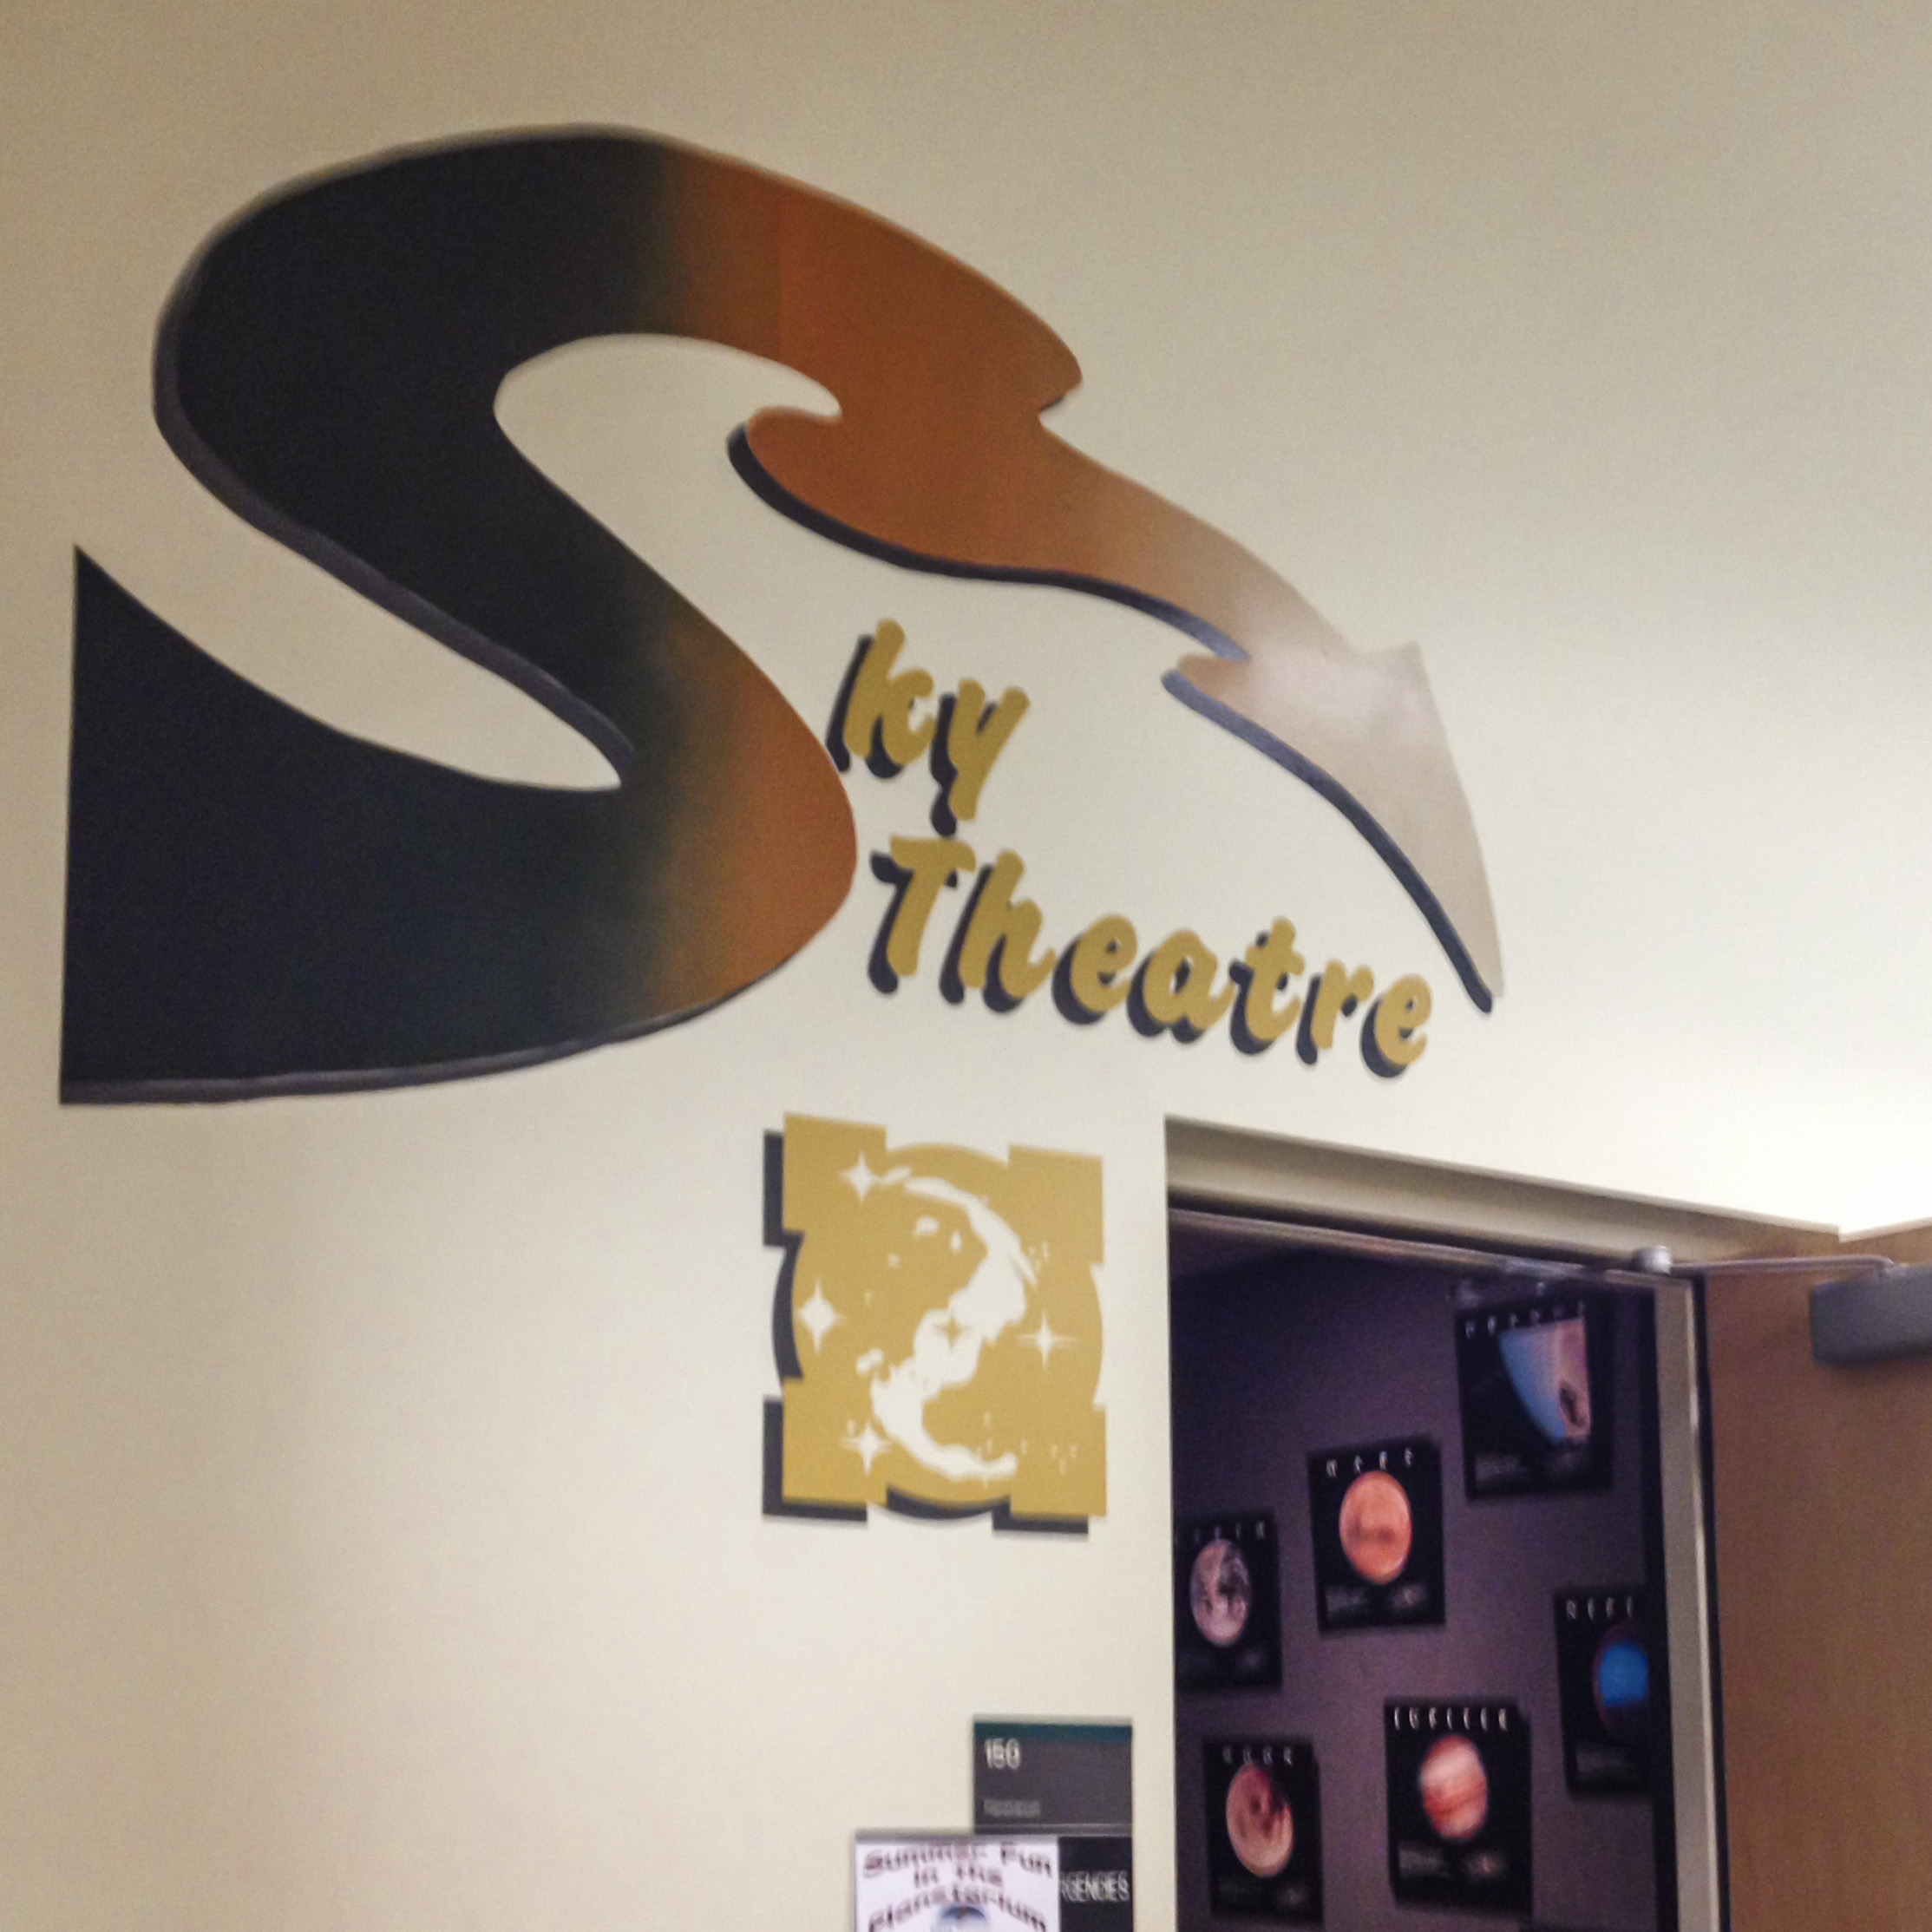 We also got the chance to take in a show at the Star Theatre inside UNT's Environmental Sciences building. While we were actually checking out a movie for kids, we learned a lot, ourselves, and definitely recommend going there.